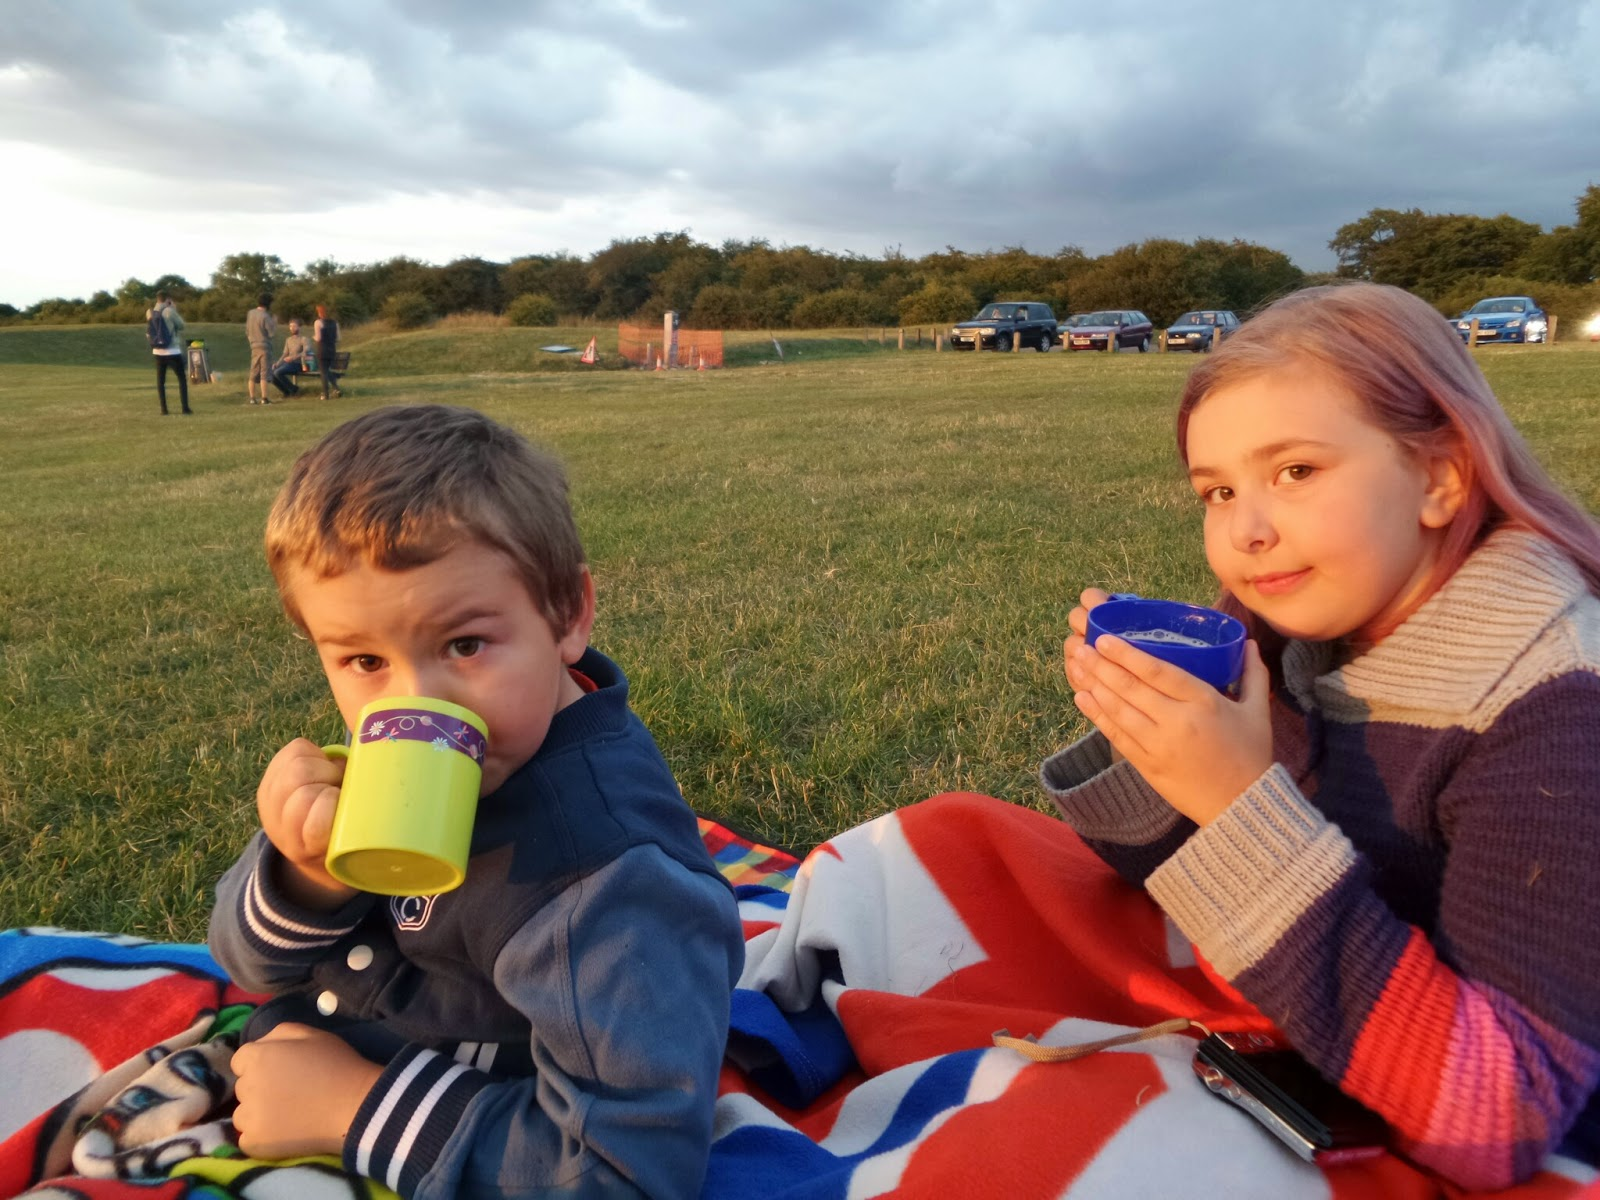 Top Ender and Big Boy drinking Hot Chocolate on Dunstable Downs